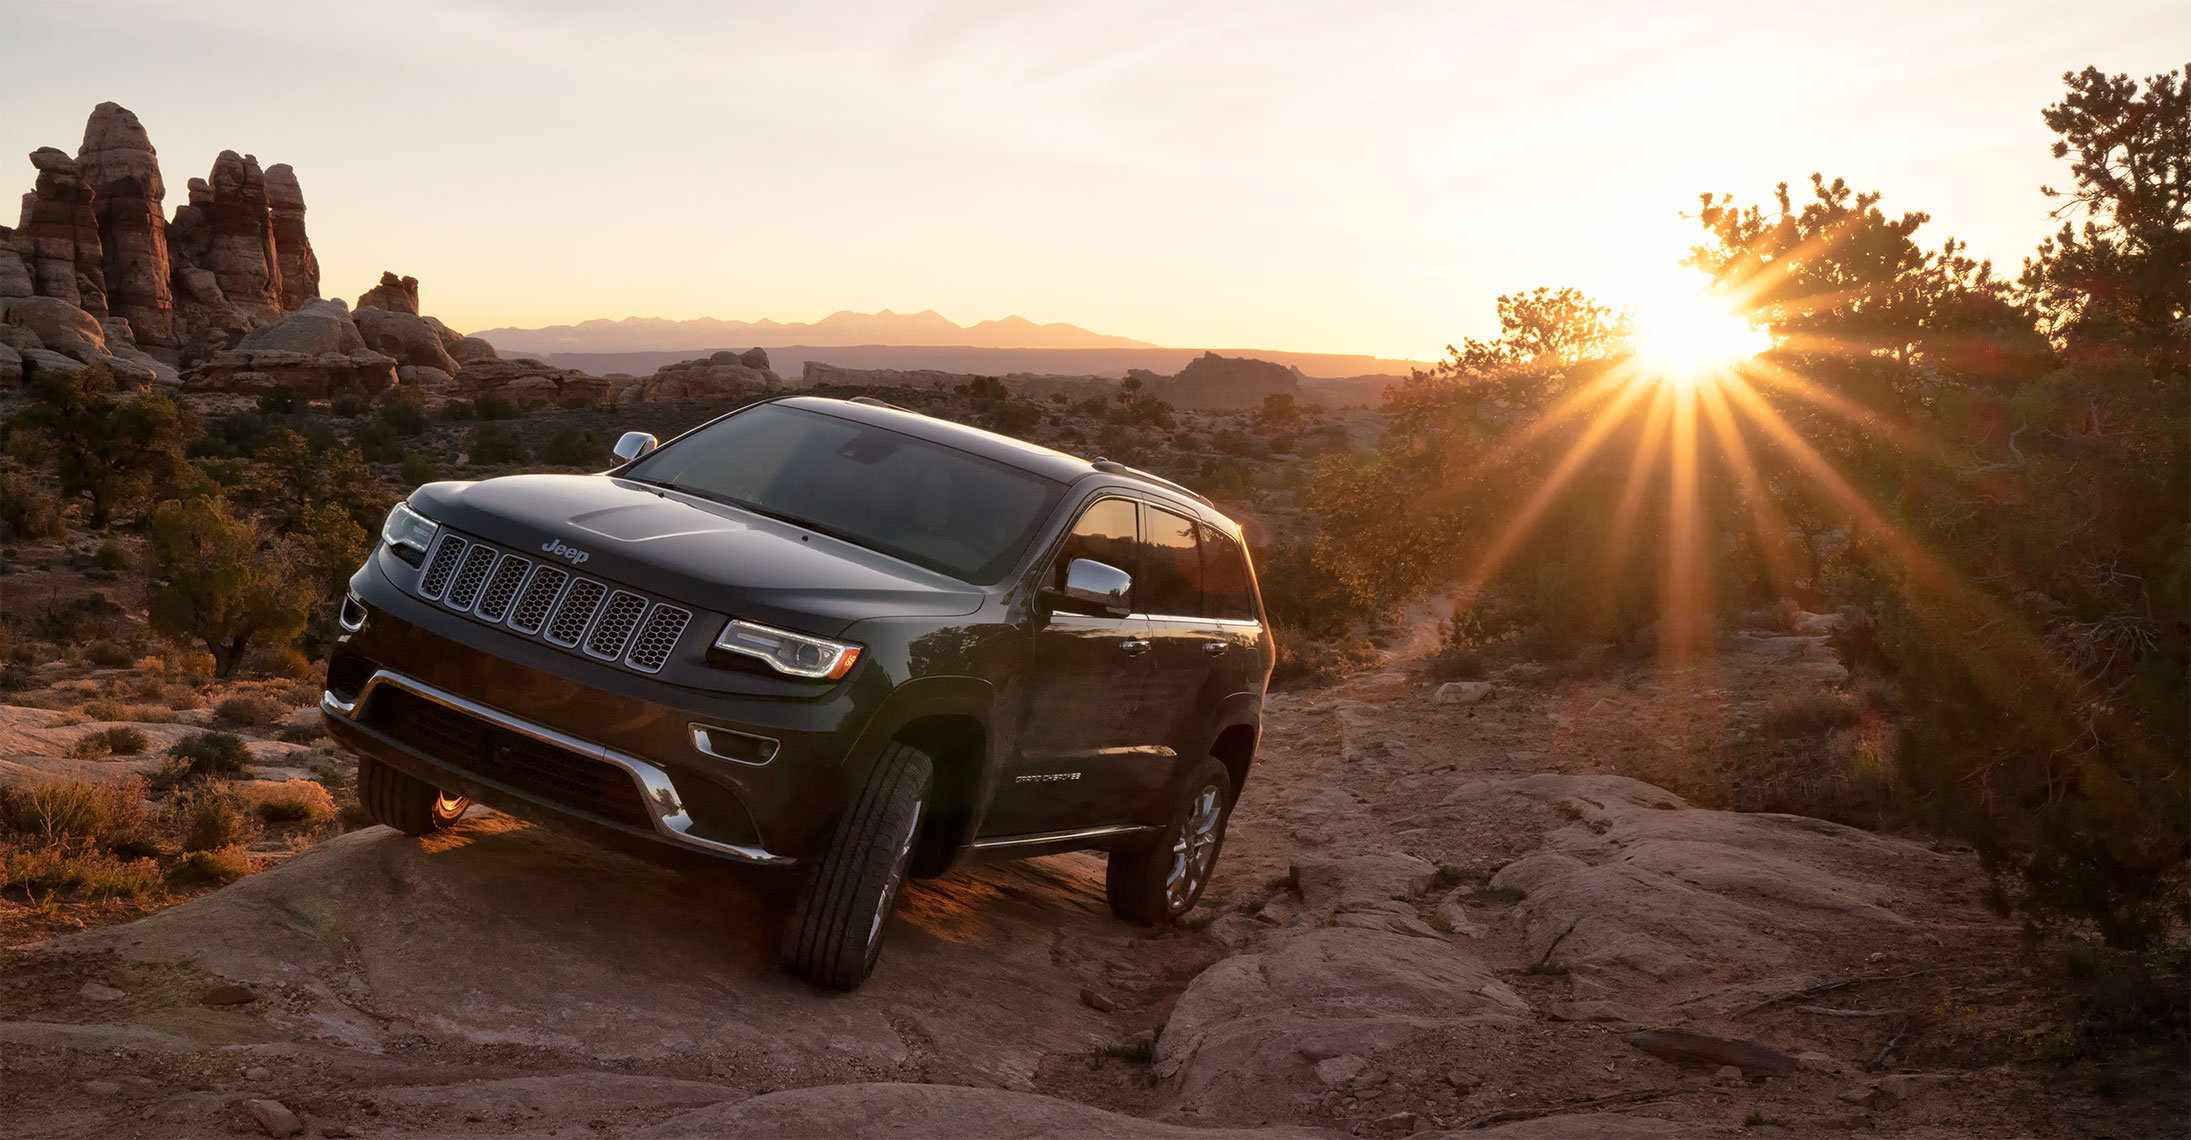 jeep_grand_cherokee_rocky_sunset_tight